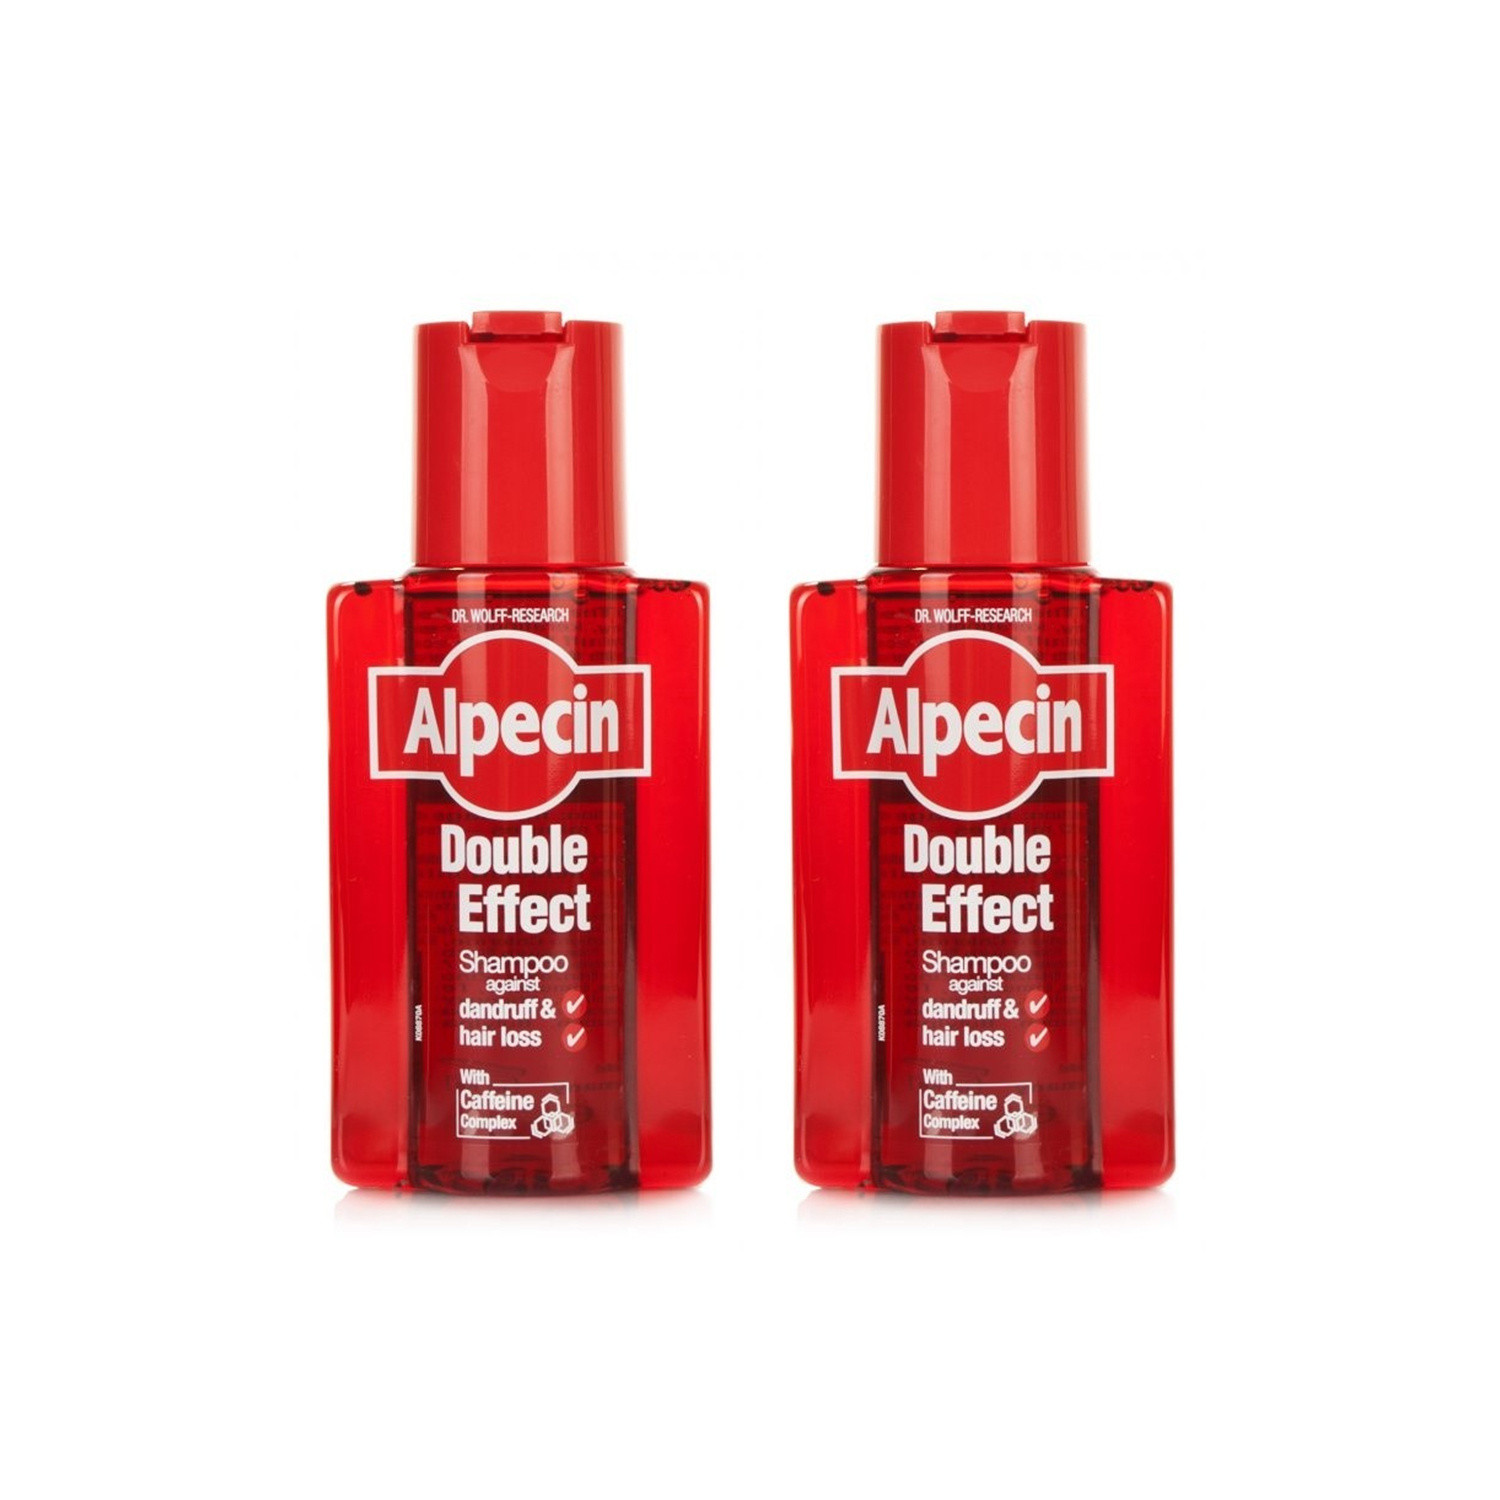 Alpecin Double Effect Shampoo Twin Pack